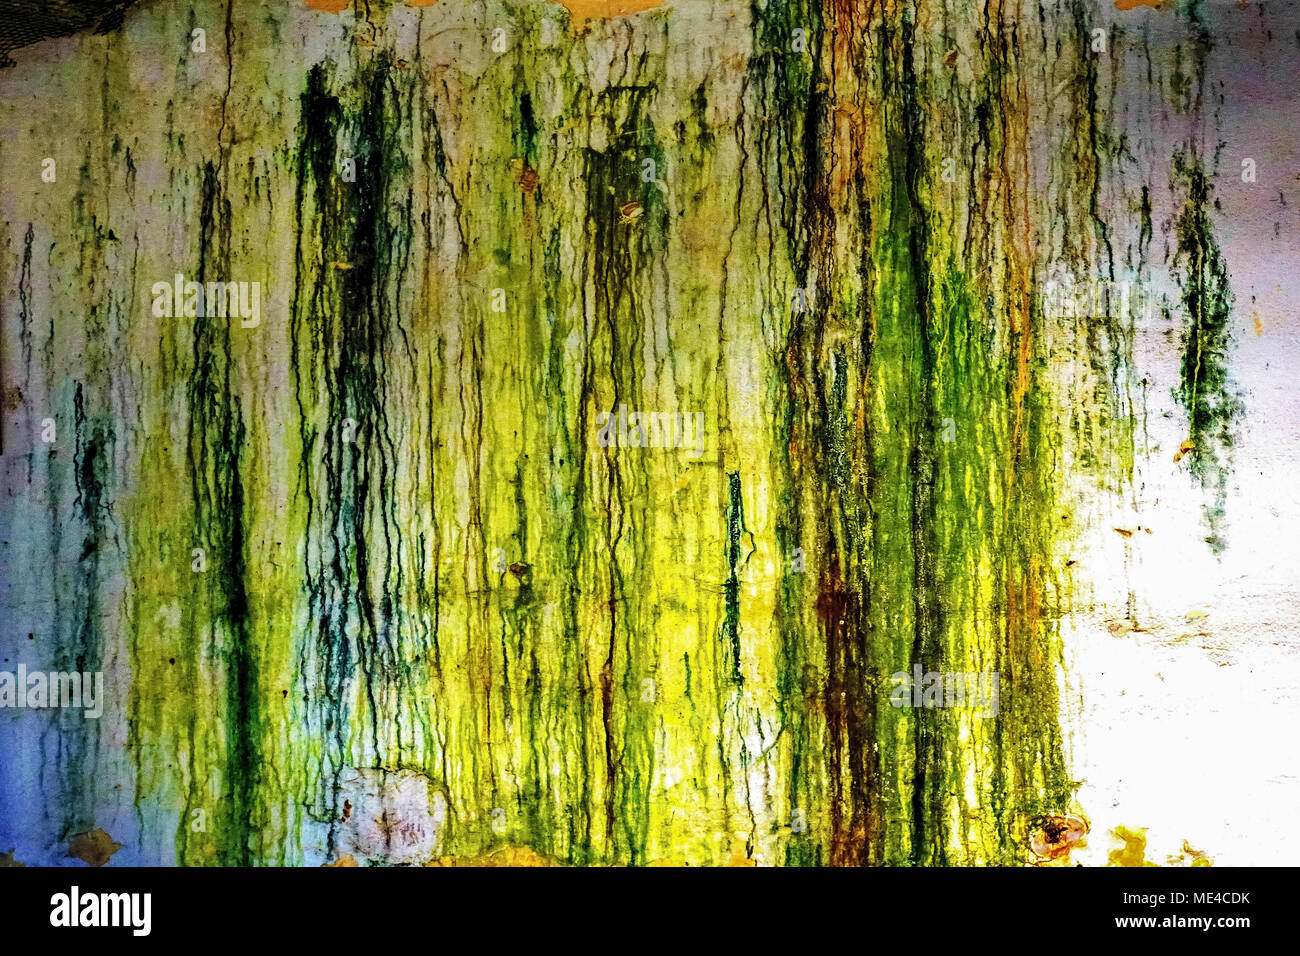 paint on wall - green and yellow Abstract background - Stock Image